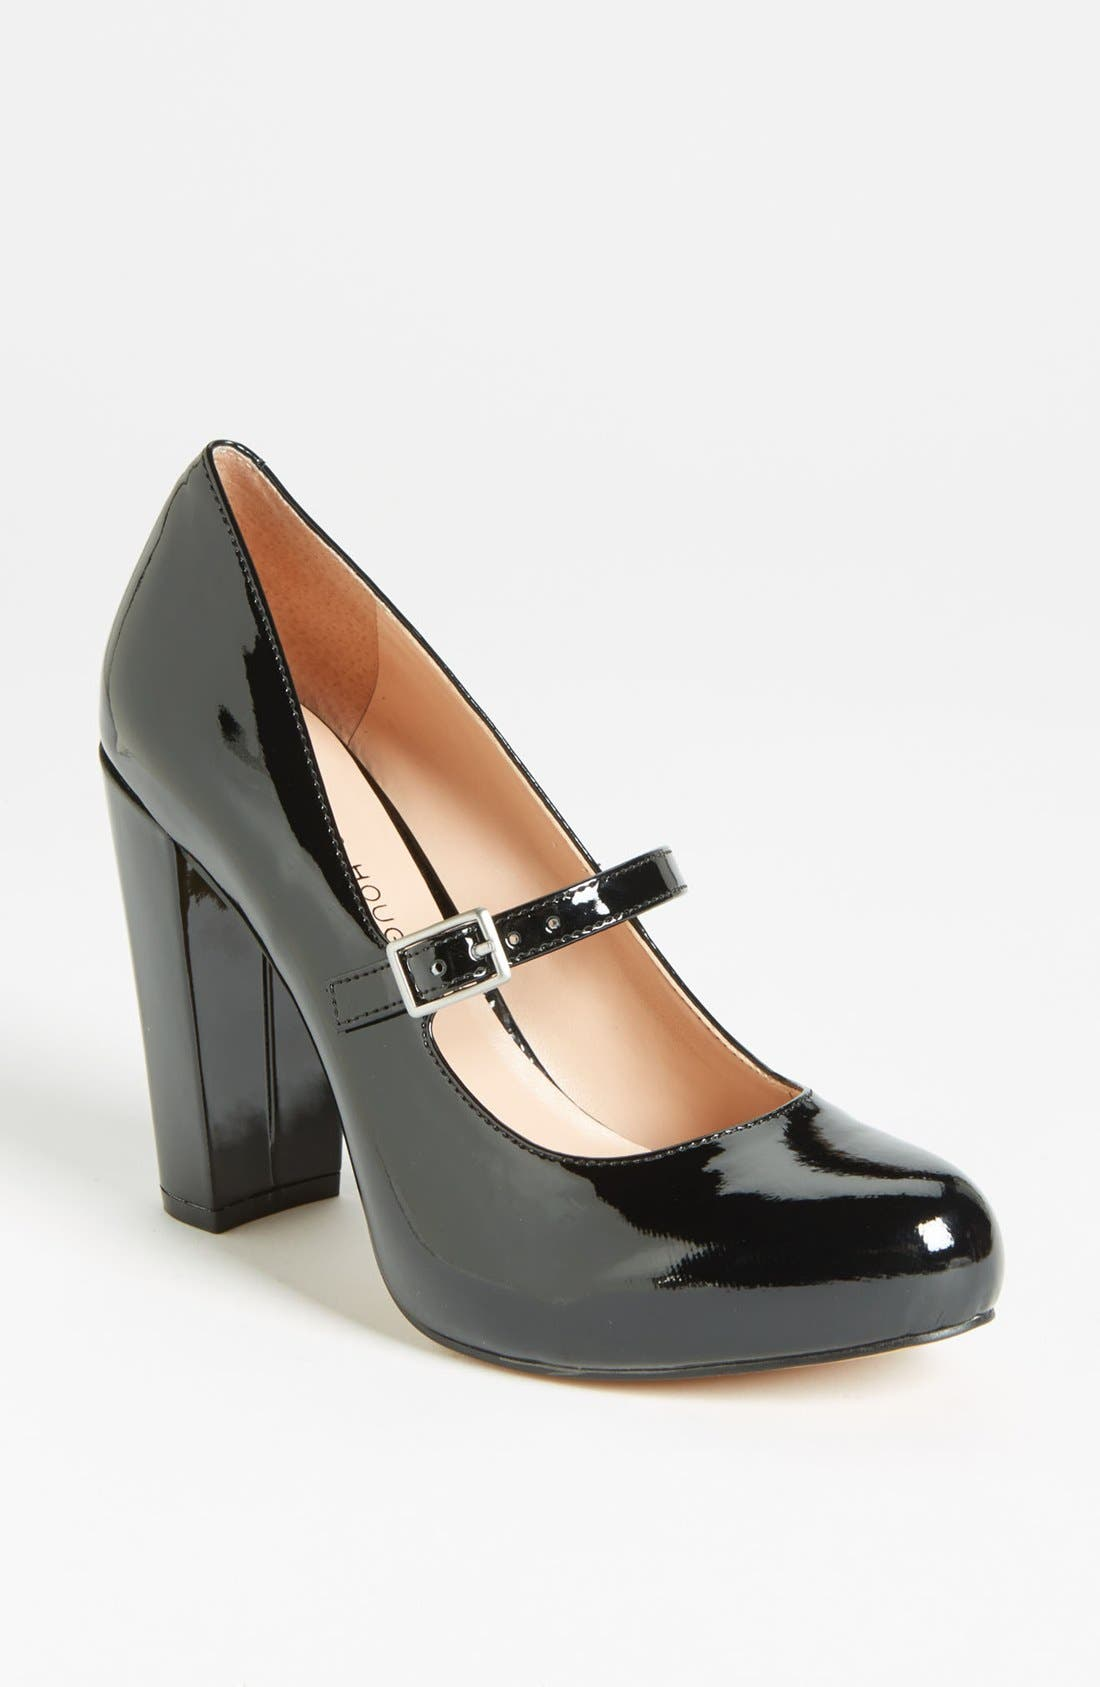 Main Image - Julianne Hough for Sole Society 'Whitney' Pump